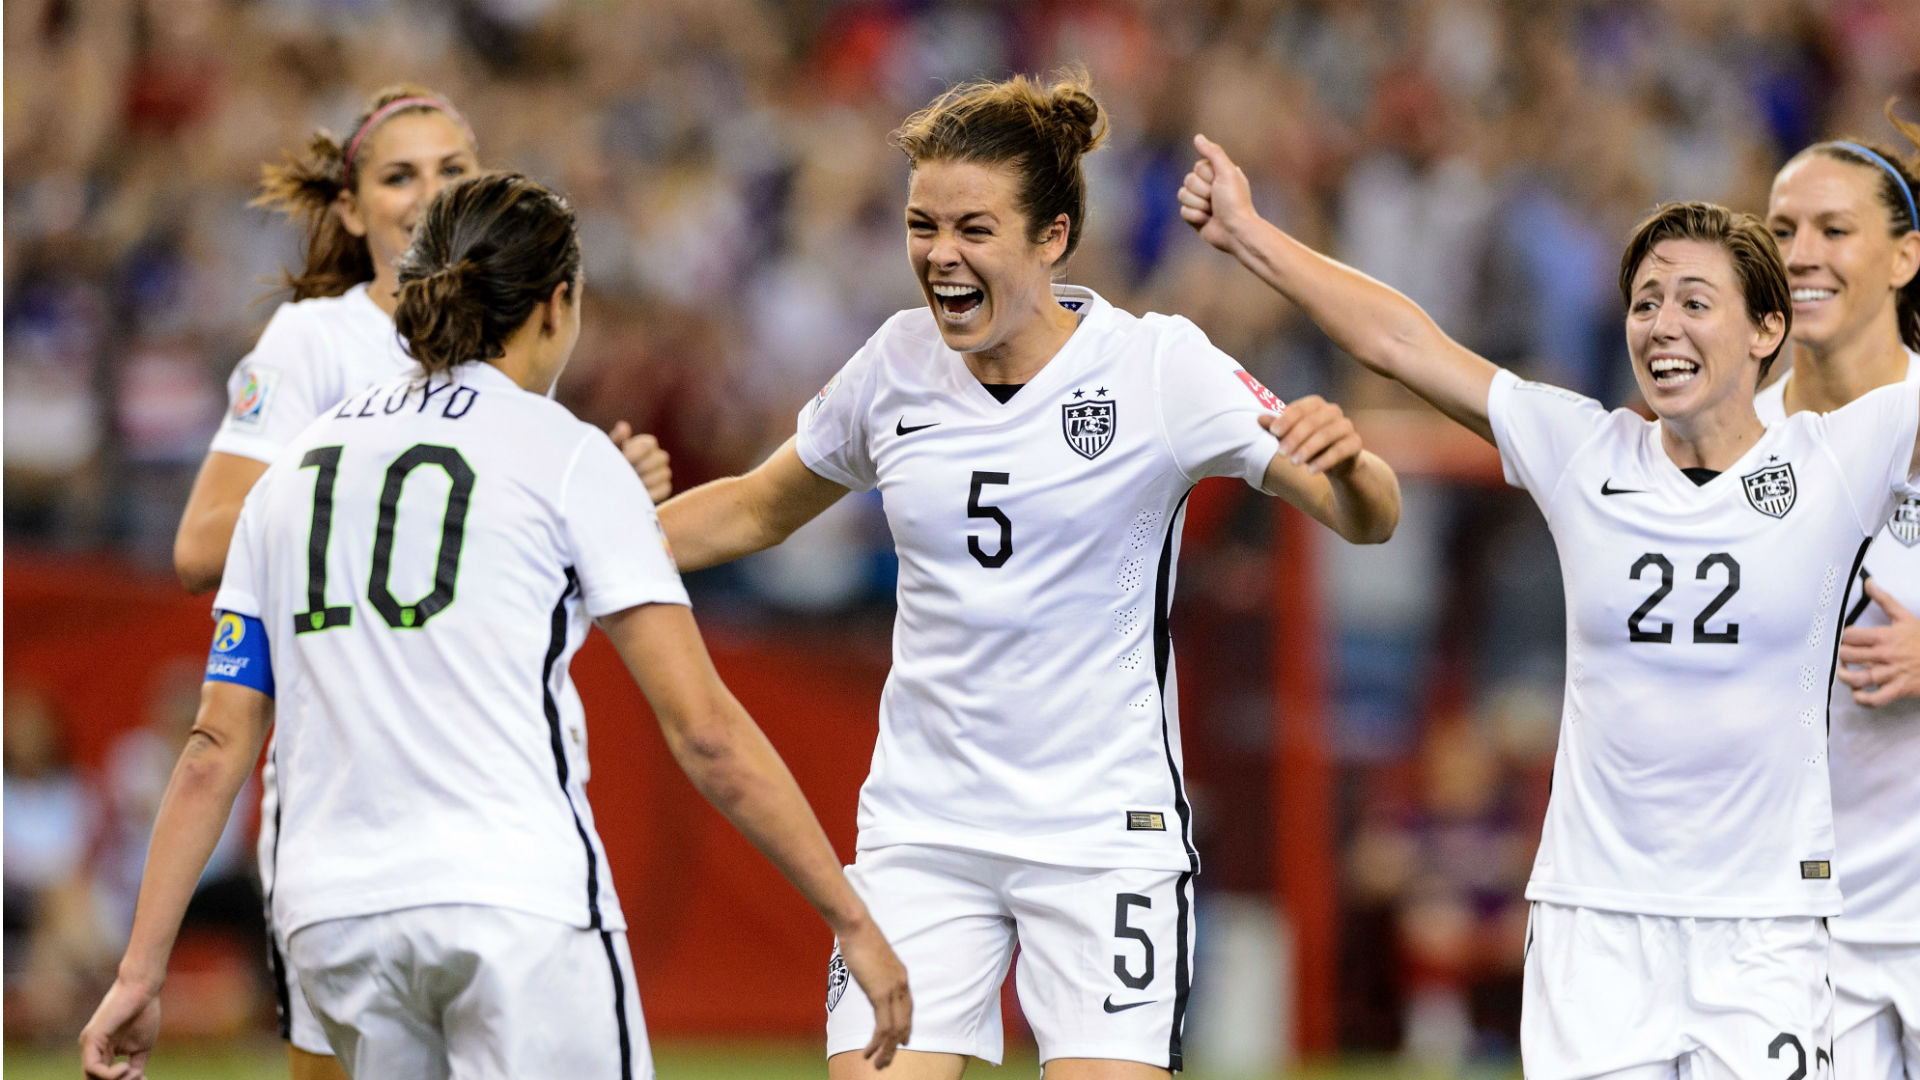 FIFA Women's World Cup Final, USA vs. Japan: Day, time, TV channel